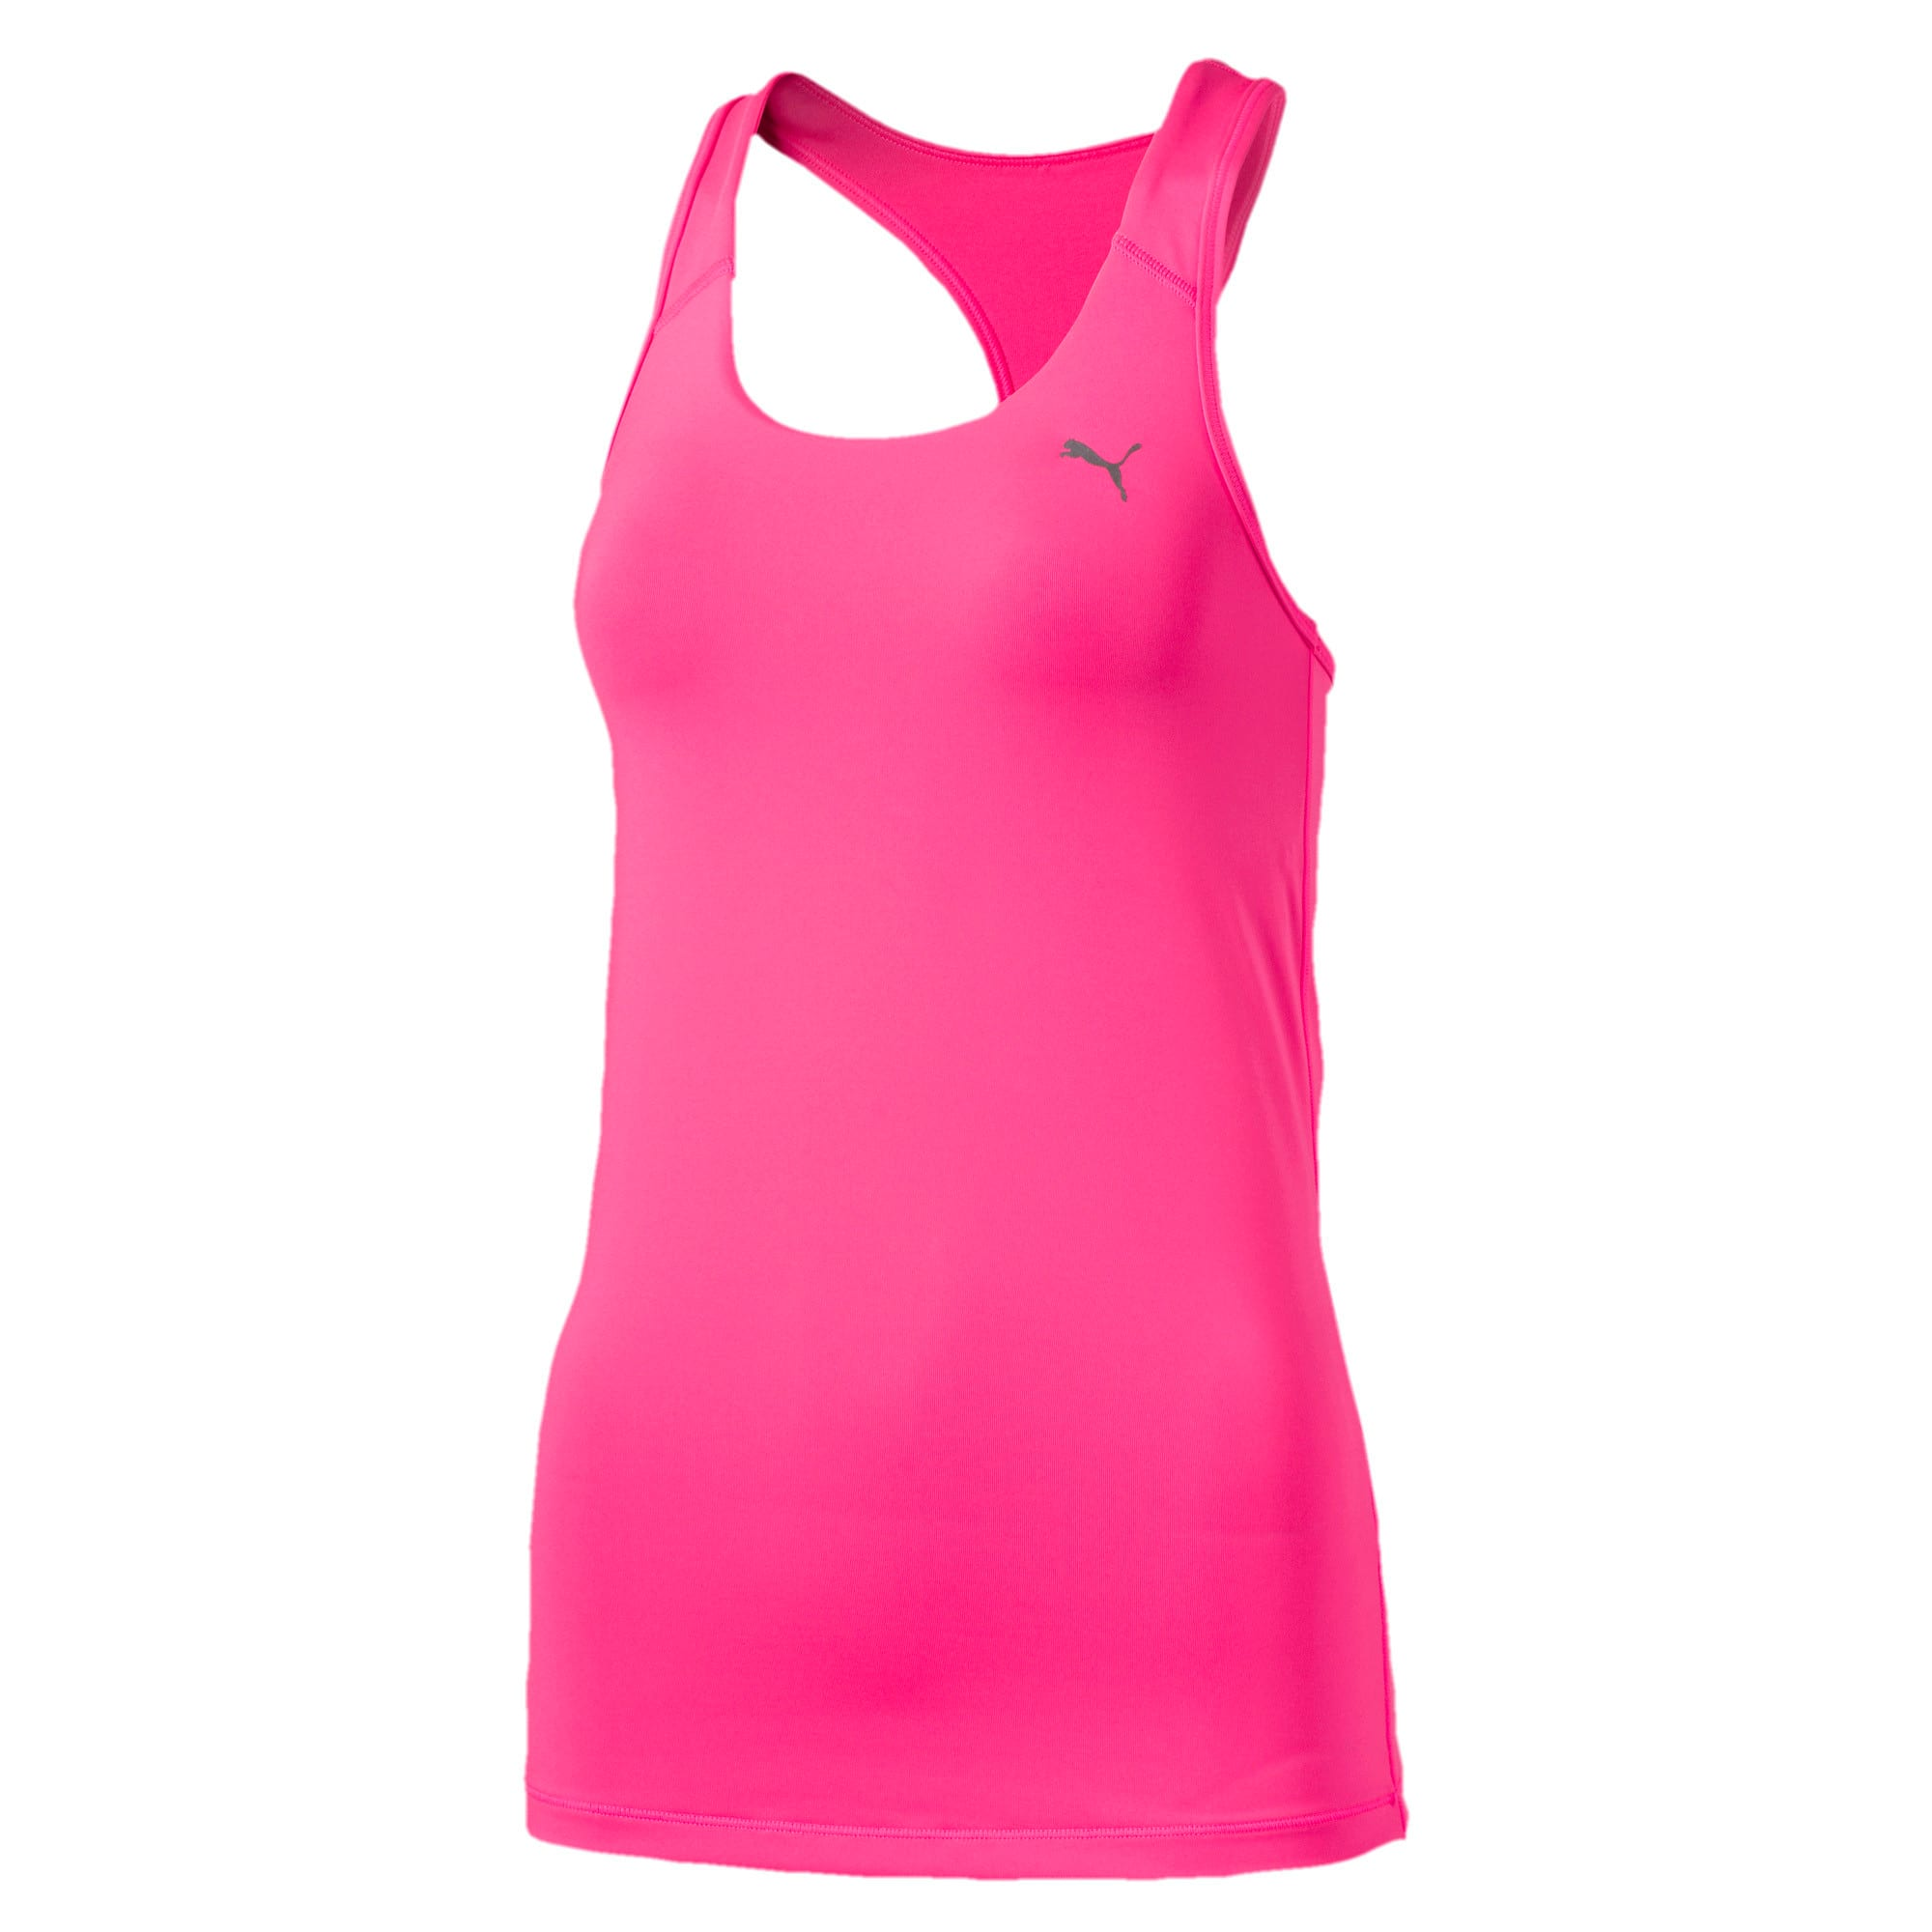 Thumbnail 1 of Essential RB Tank Top, KNOCKOUT PINK, medium-IND